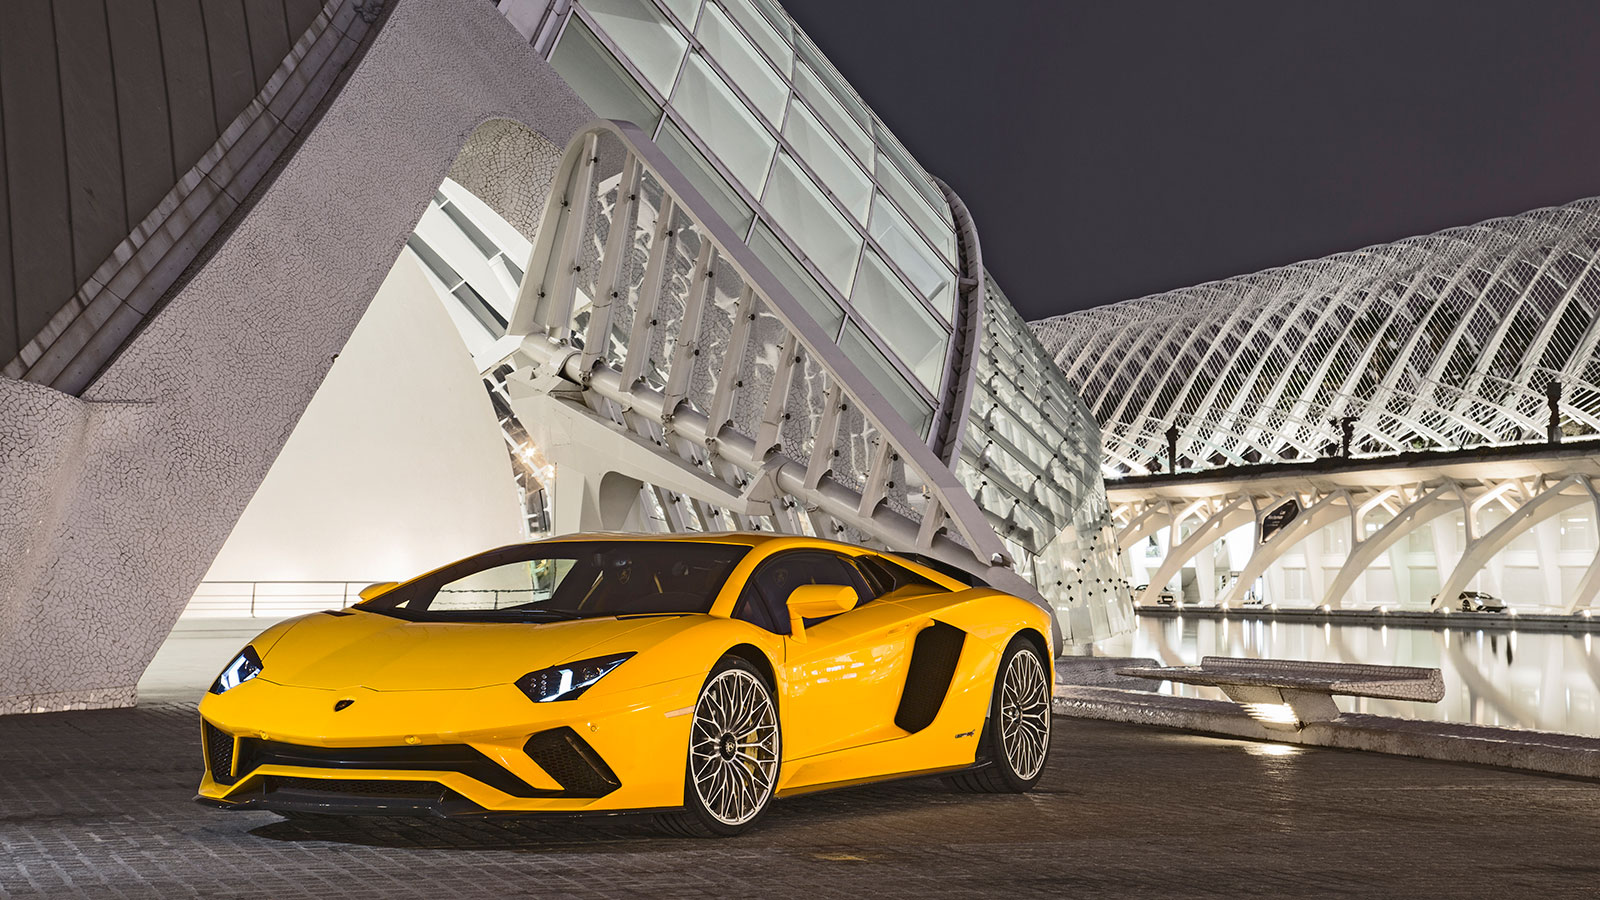 Lamborghini Aventador S Coupe - The Icon Reborn image 5